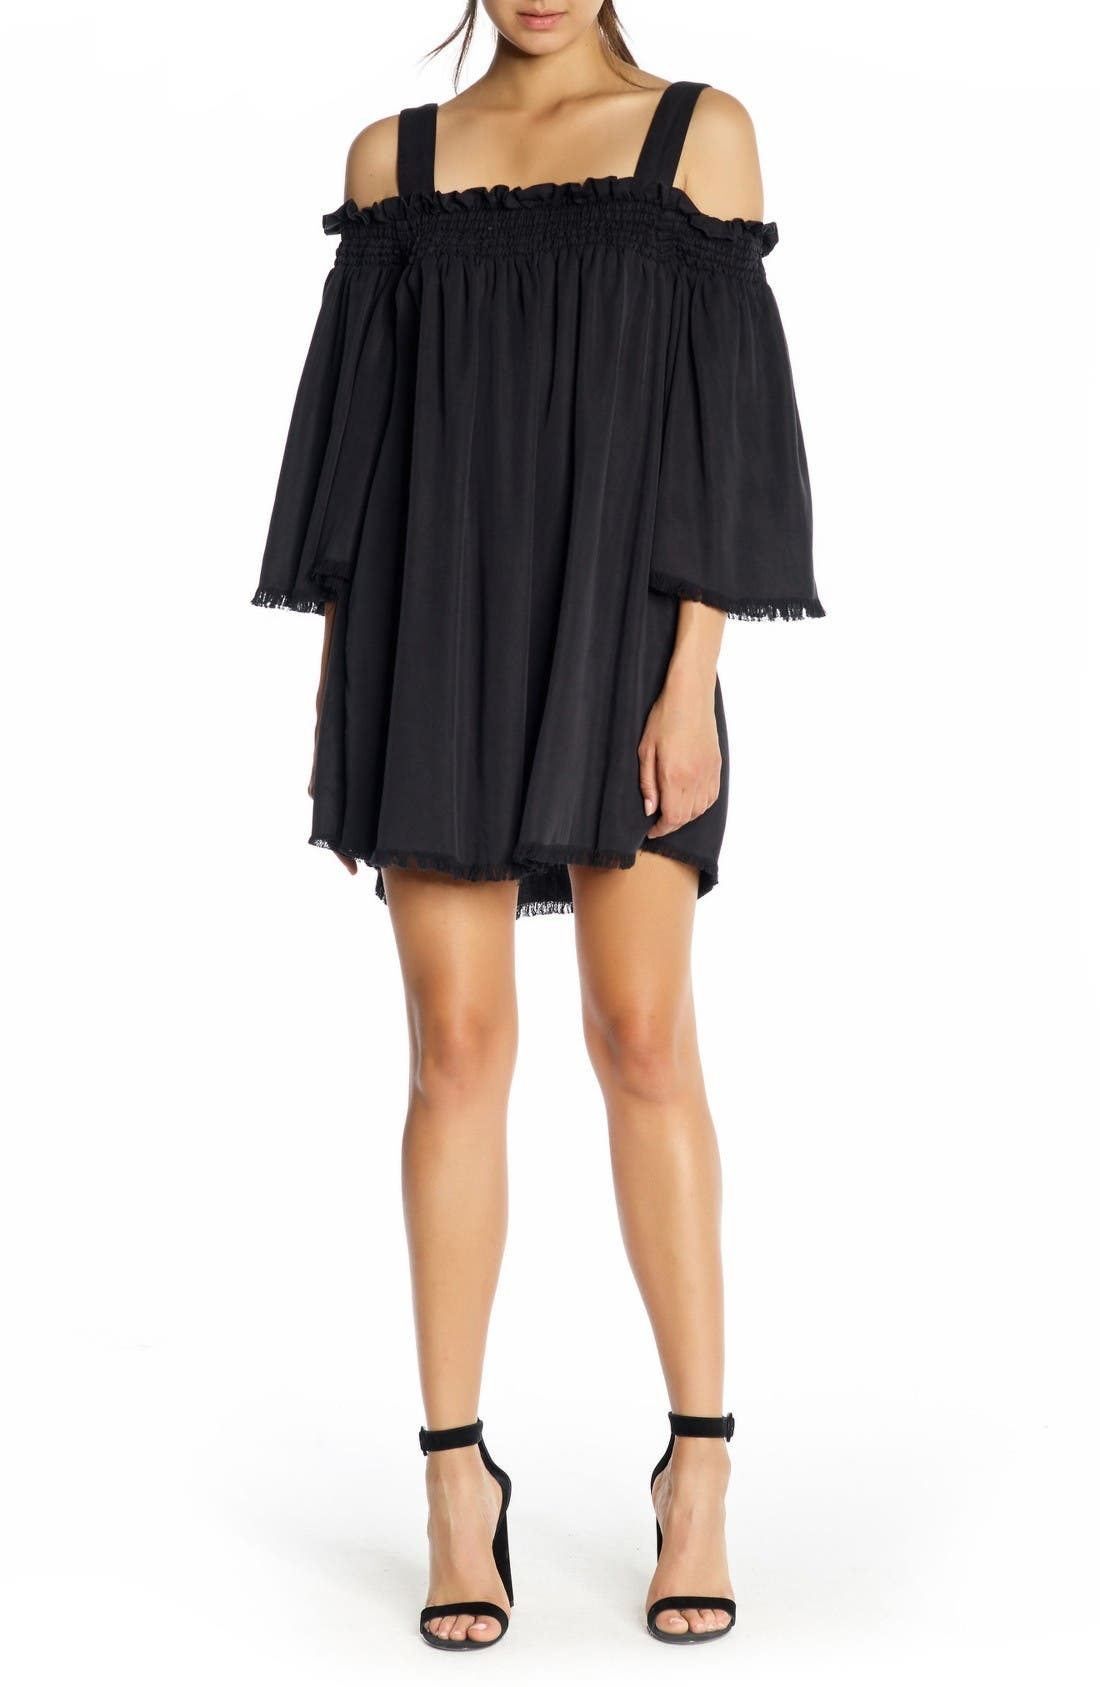 Main Image - KENDALL + KYLIE Fray Twill Swing Dress